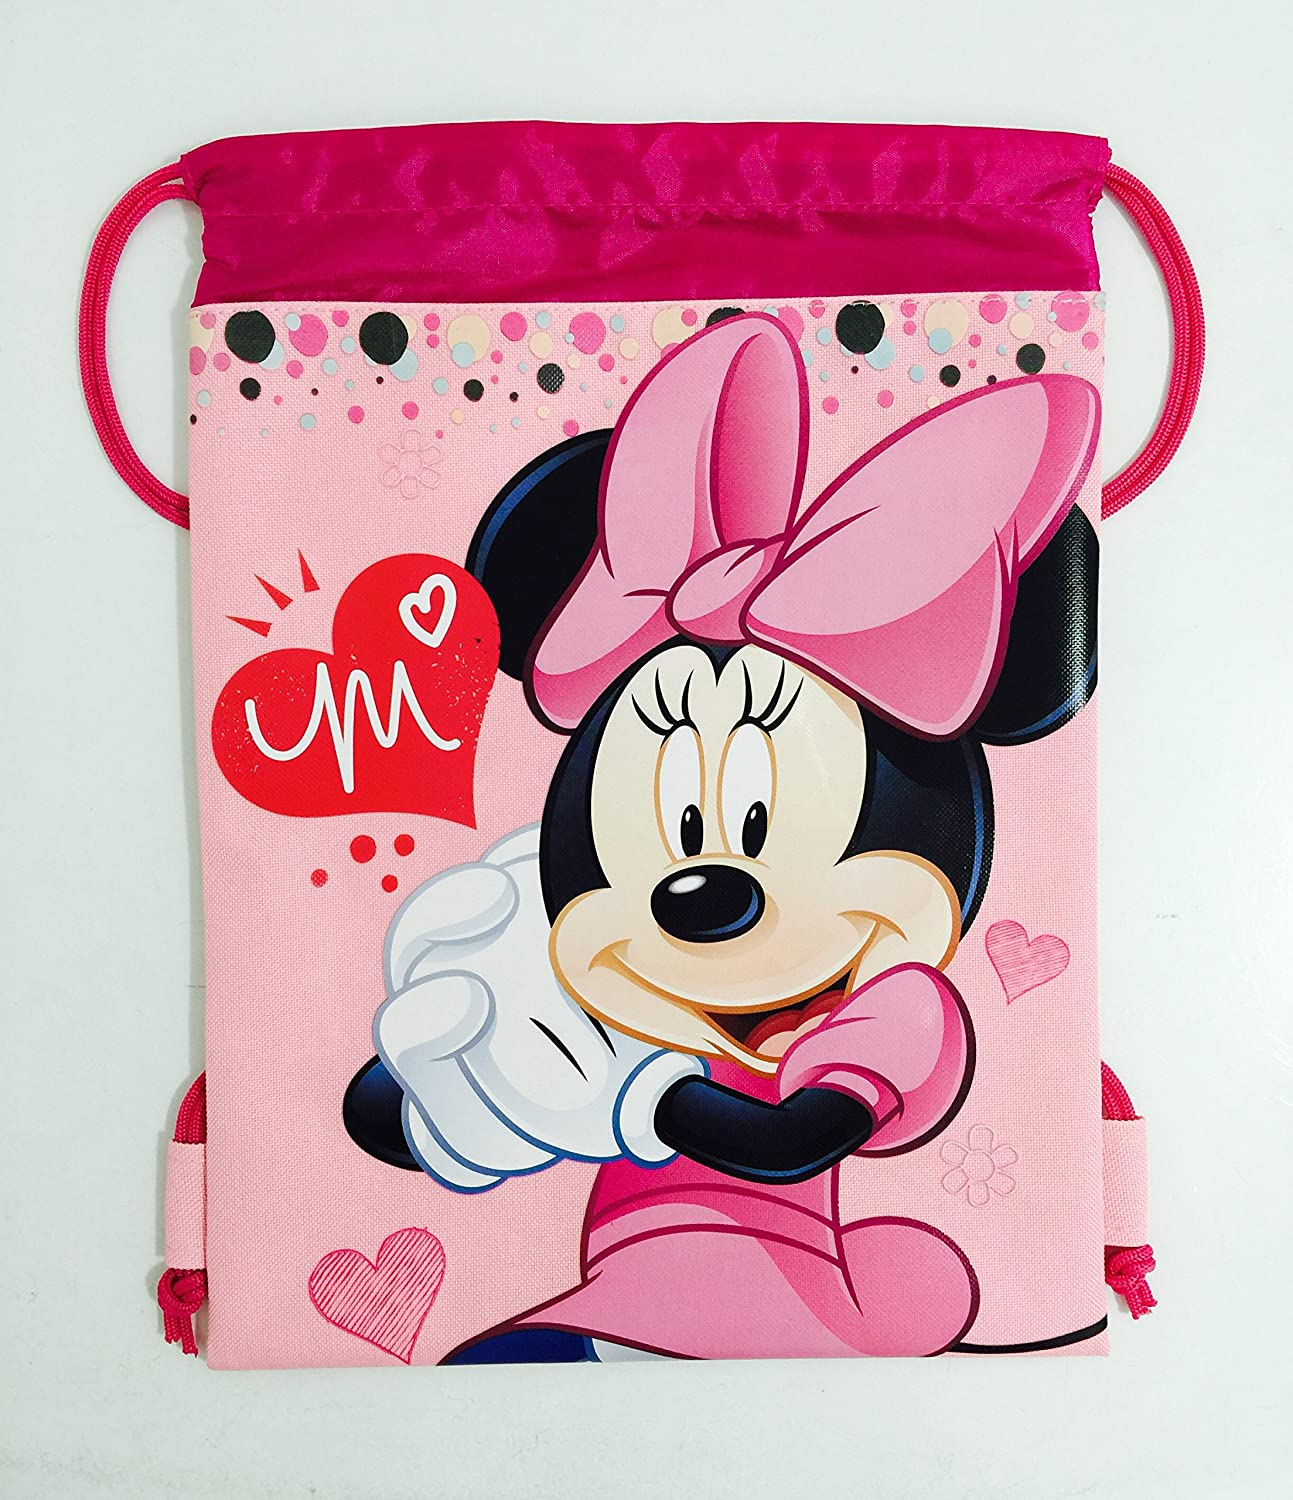 Amazon.com: Disney Minnie Mouse Cordón Mochila Bolsa Con ...